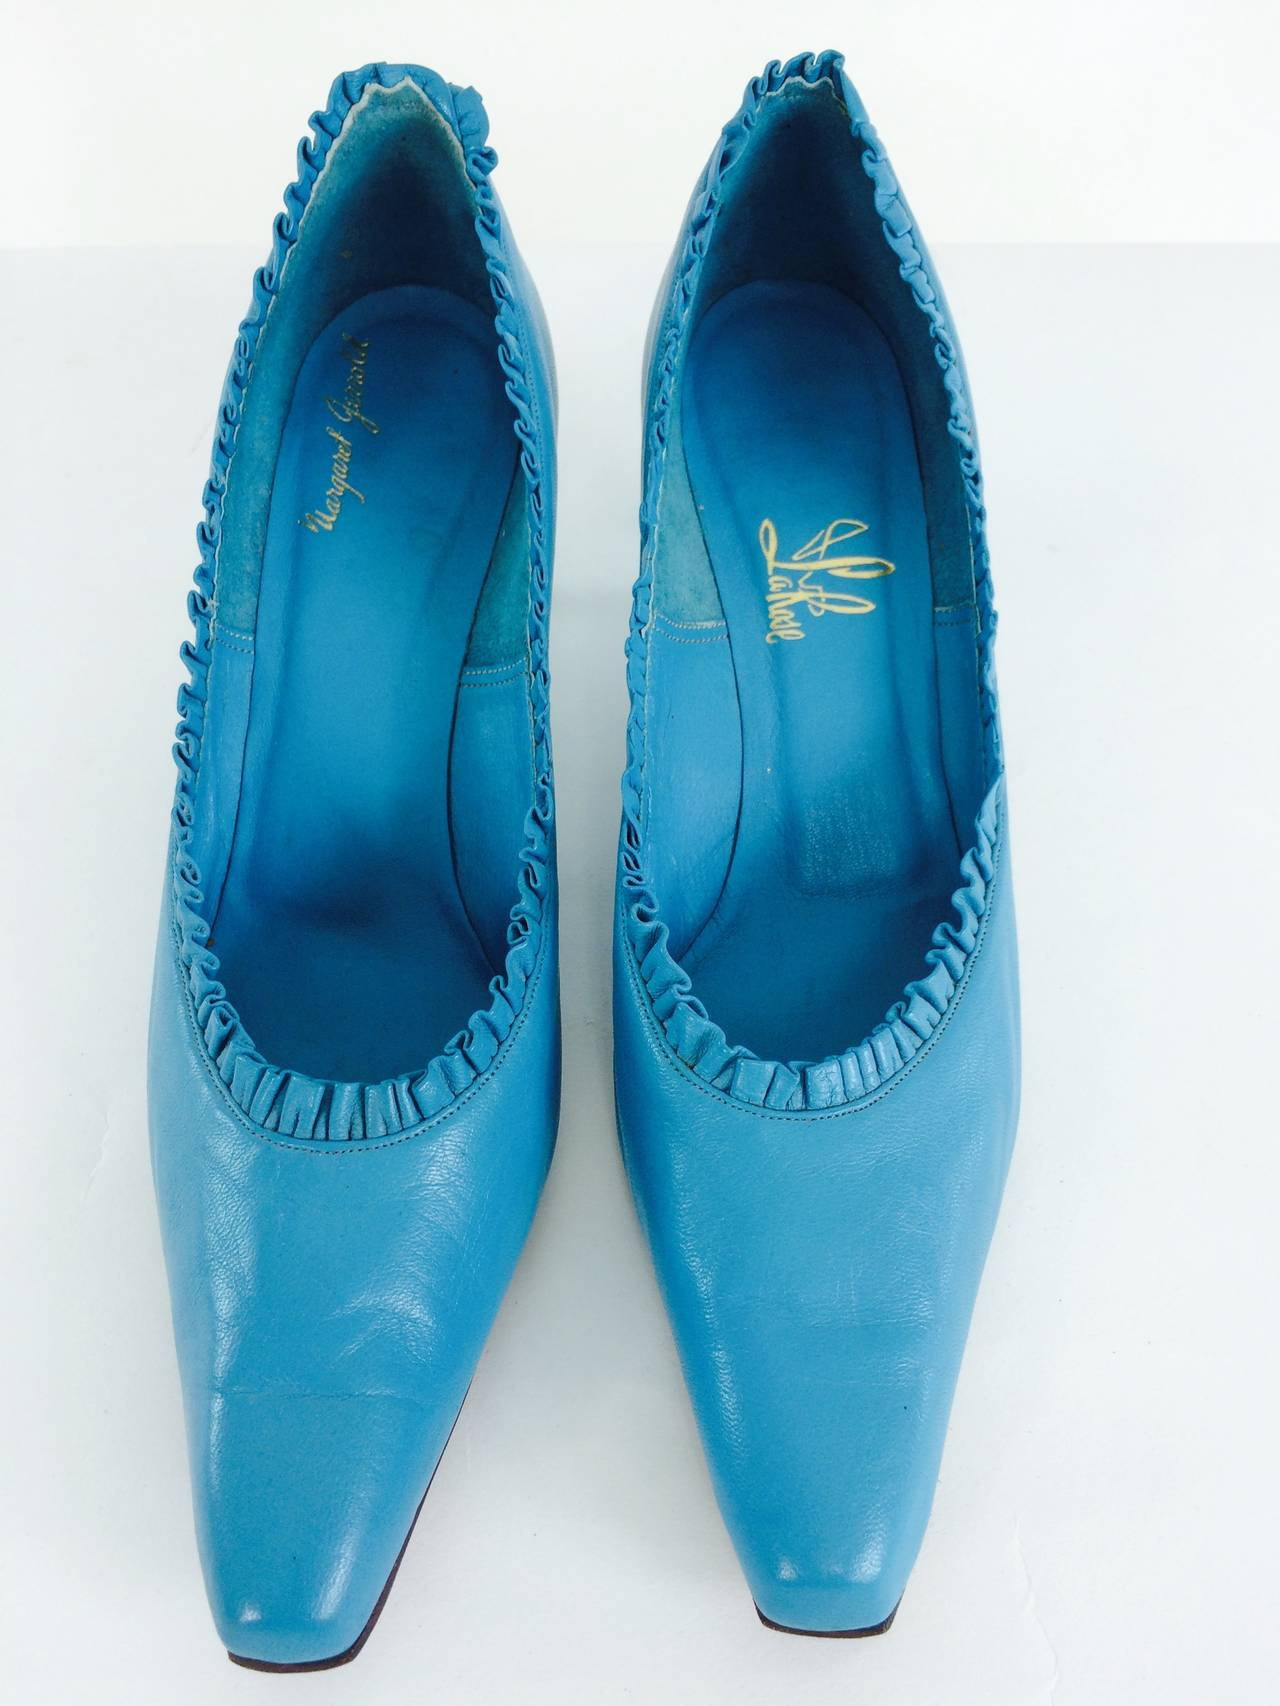 """Jerry Miller was the grandson of I Miller the shoe king...He married Margaret Clark, a designer who trained at Parsons, in the early 1950s, together they set up their own company, """"Shoe Biz"""", selling her designs under the  """"Margaret Jerrold"""""""